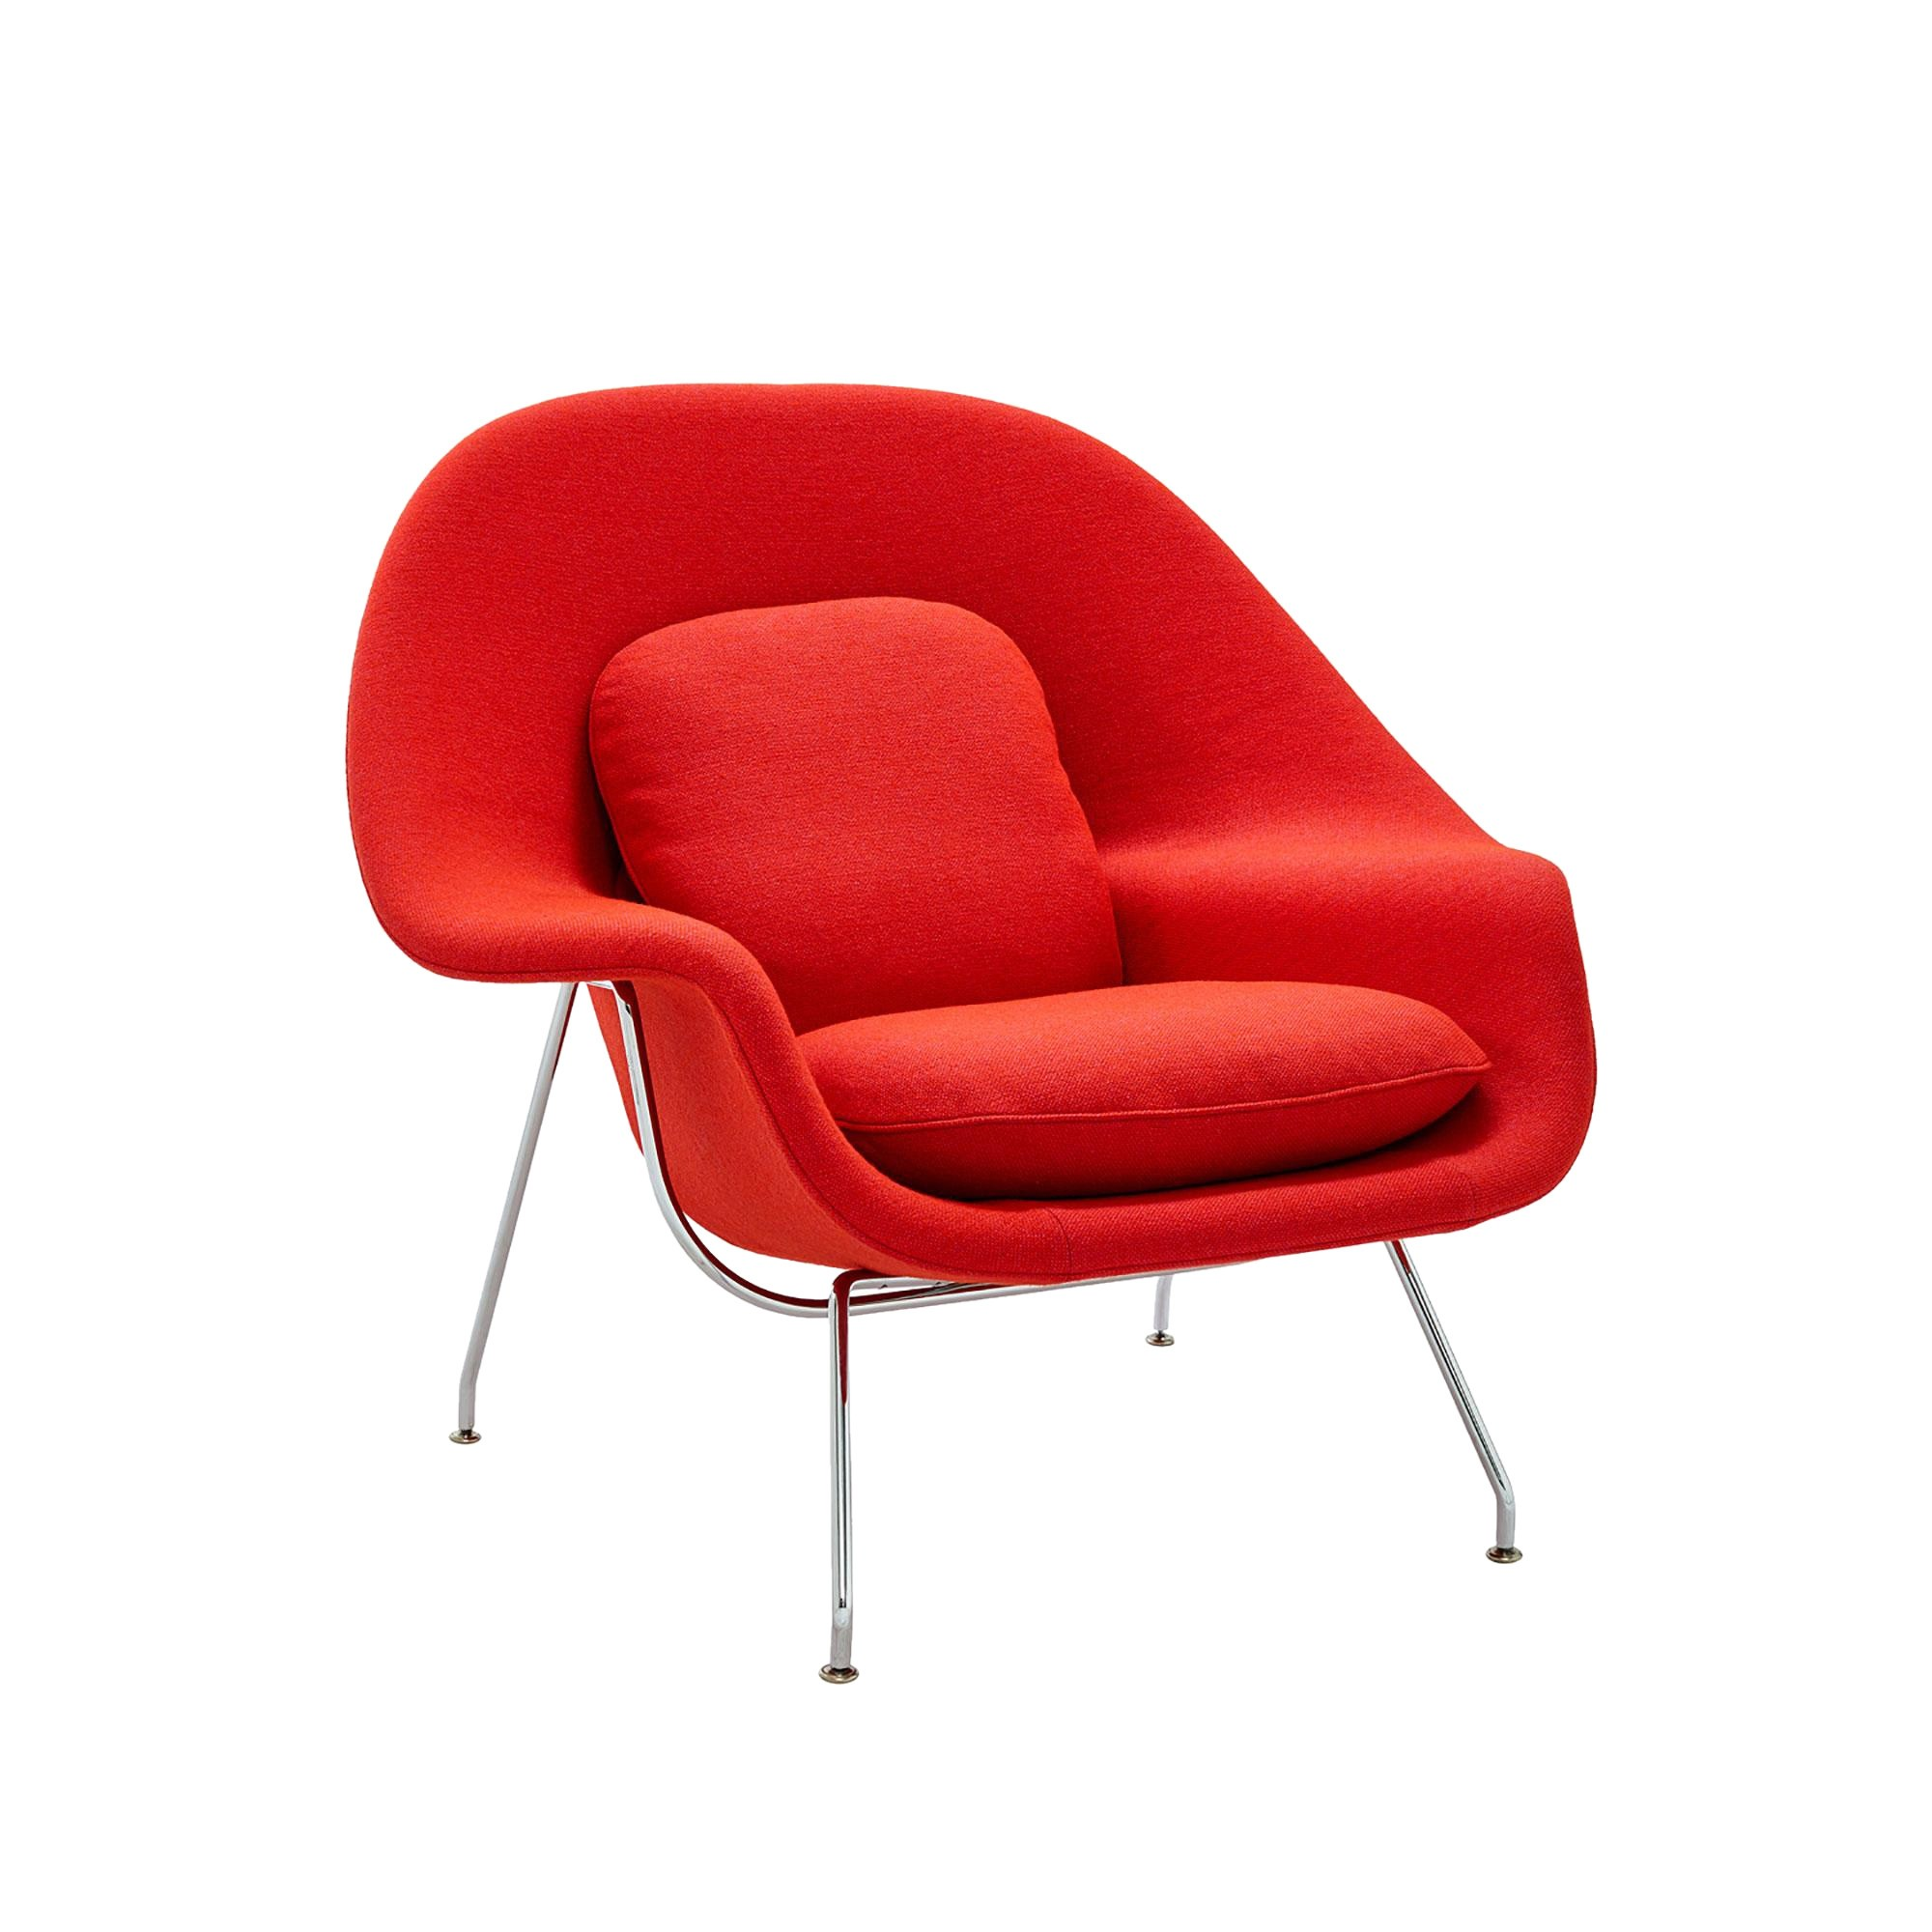 Relax Ledersessel Womb Chair Relax Sessel Gestell Chrom